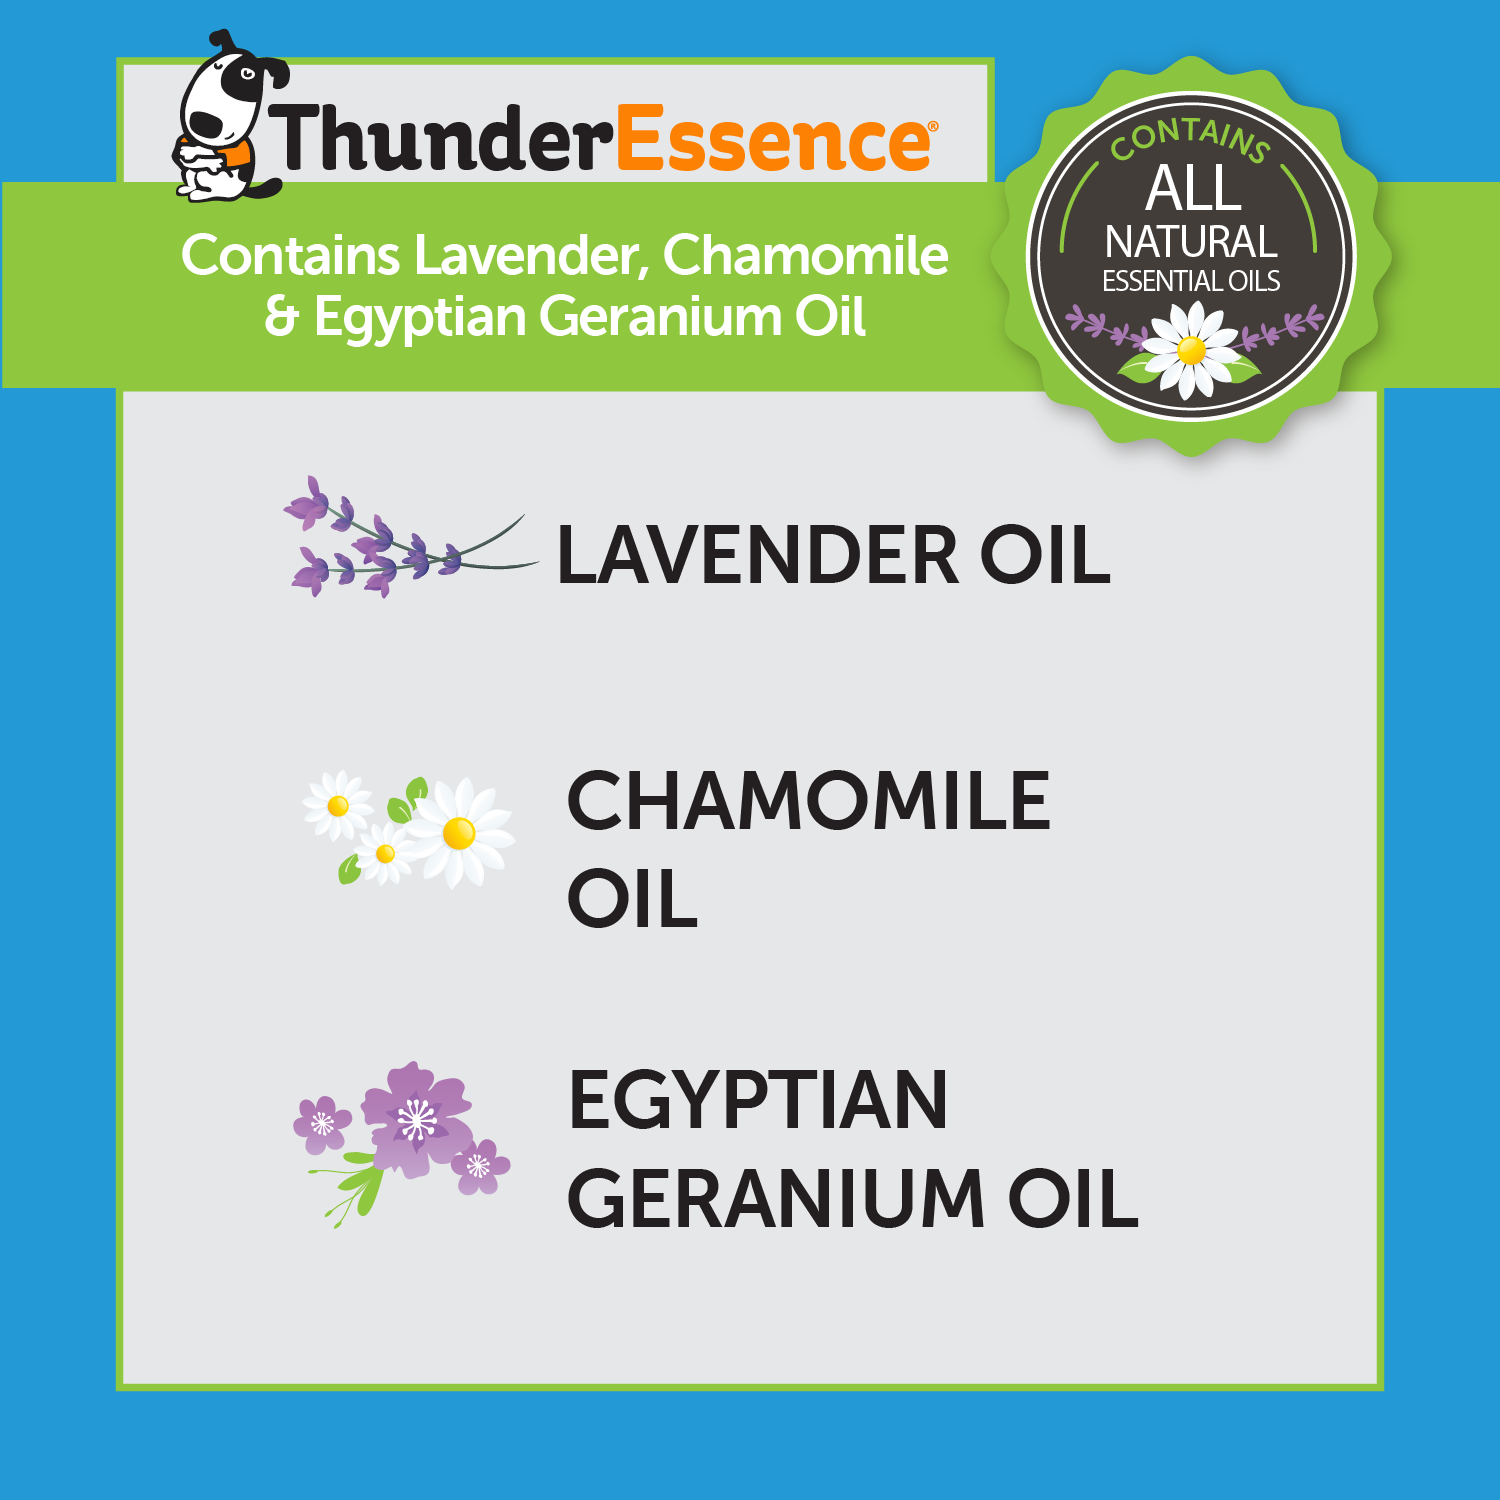 ThunderEssence Essential Oil for Dogs - Calming Ingredients